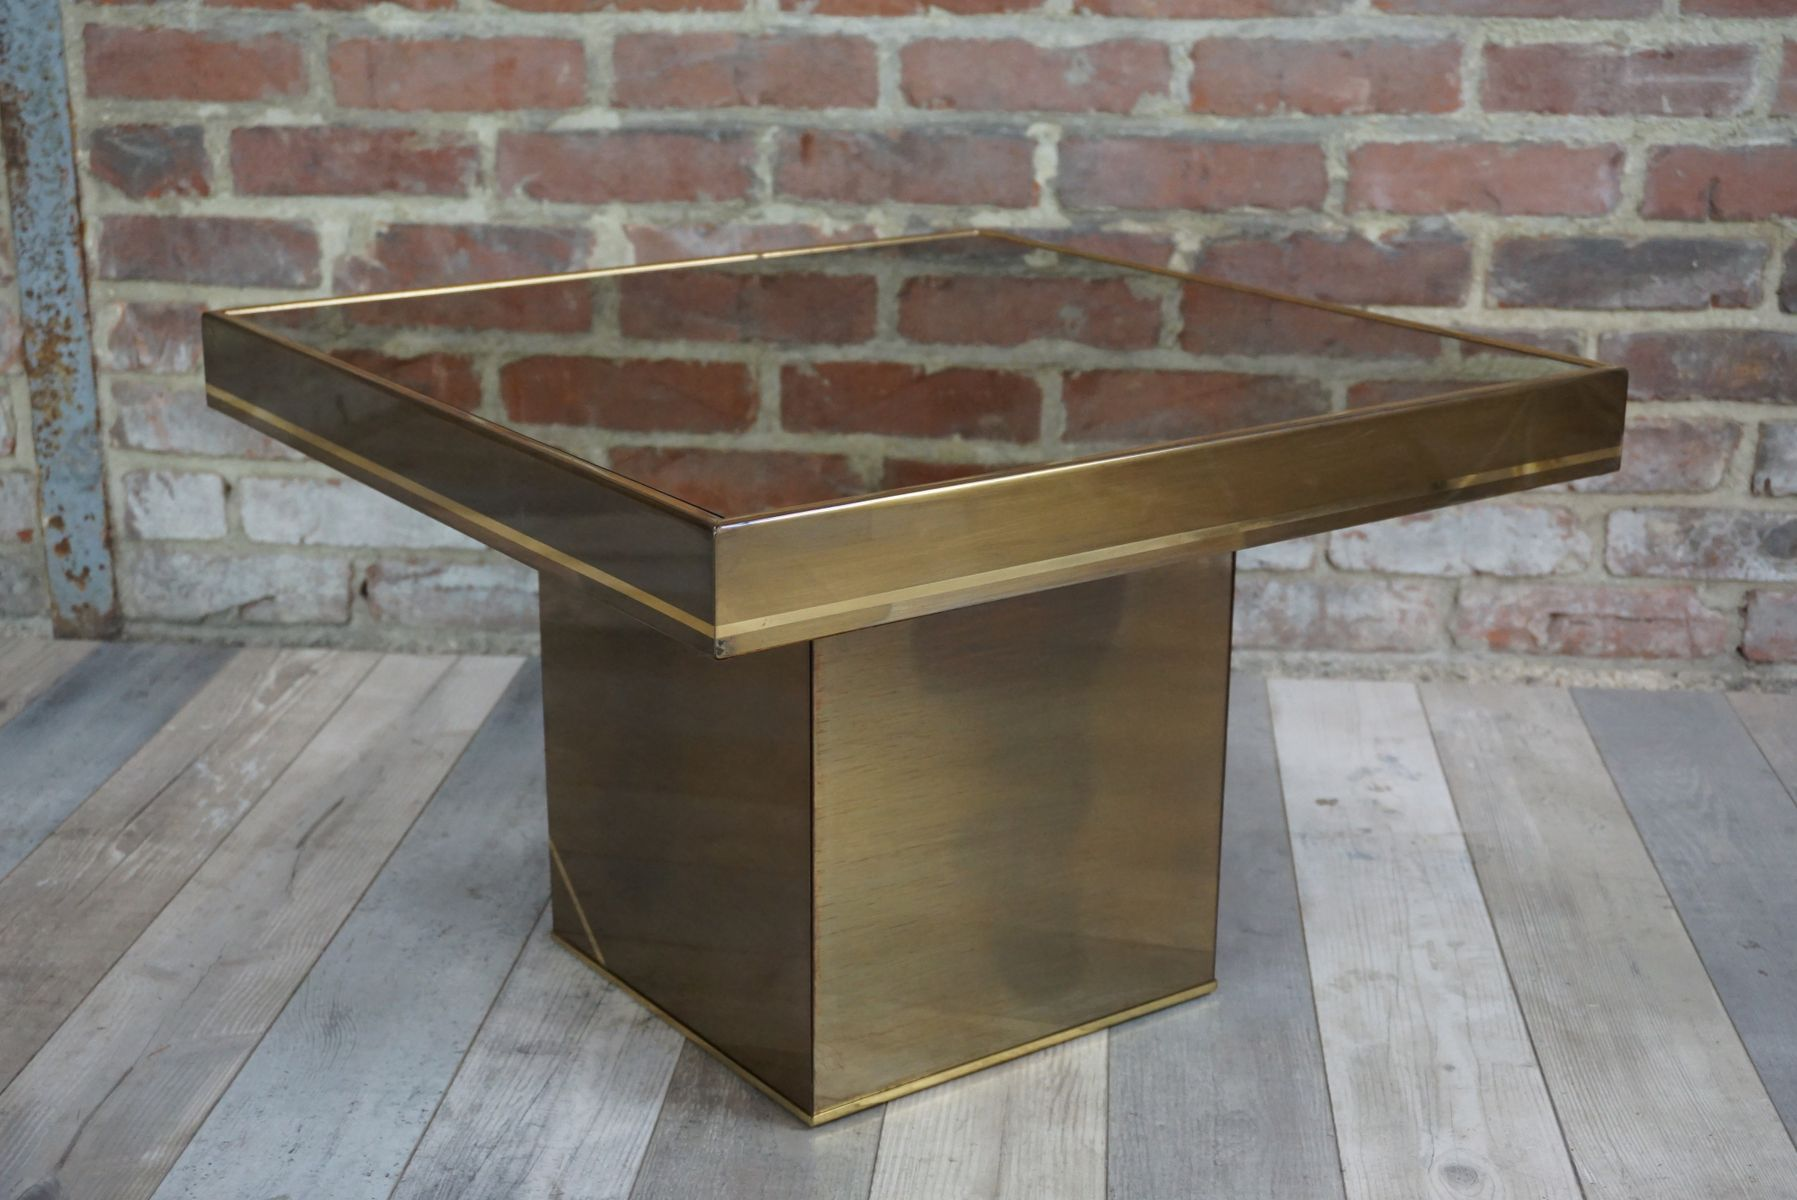 Vintage Square Coffee Table In Lacquered Metal And Brass For Sale At Pamono